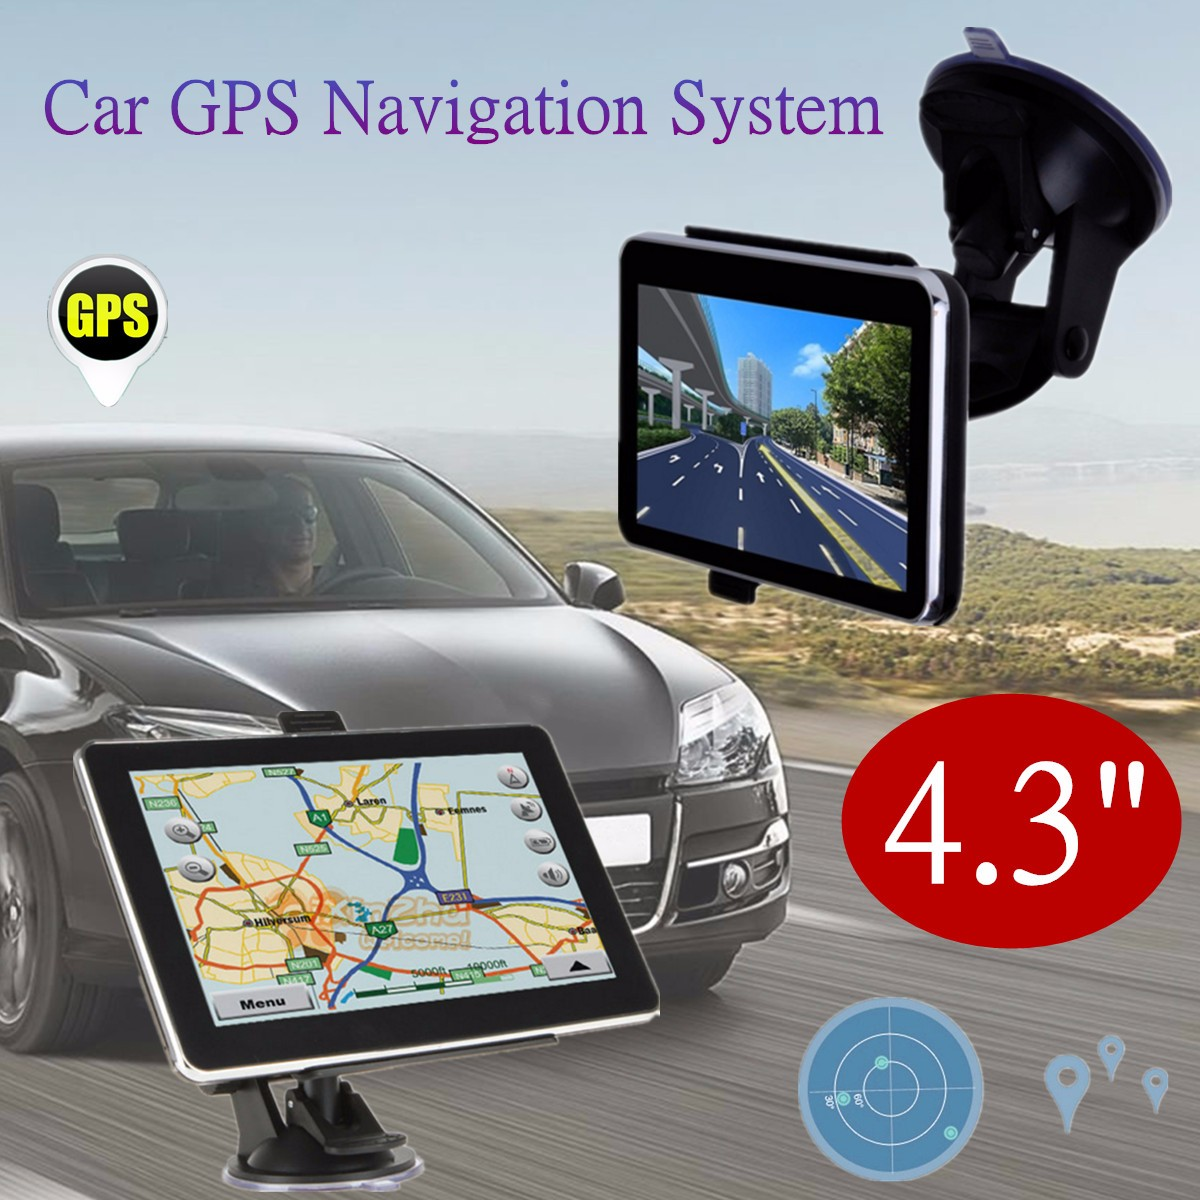 4.3 HD Car GPS Navigation FM Radio Player 8GB Navitel Europe & UK Upgrade Map Free Sat Nav Truck Automobile GPS Navigators 4 3 inch car gps sat nav voice navigation 8gb fm mp3 mp4 ebook free uk eu au nz maps update